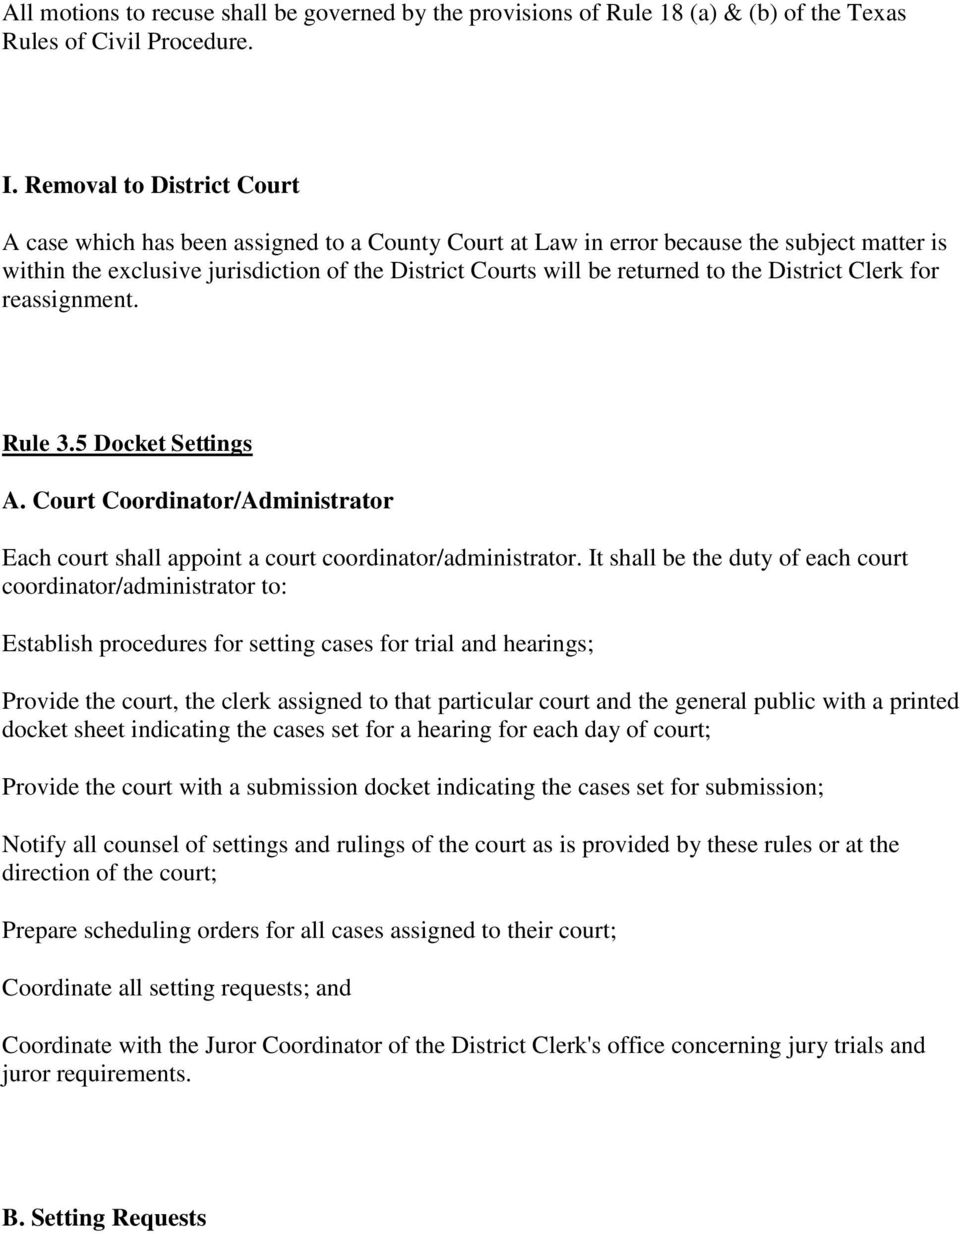 the District Clerk for reassignment. Rule 3.5 Docket Settings A. Court Coordinator/Administrator Each court shall appoint a court coordinator/administrator.